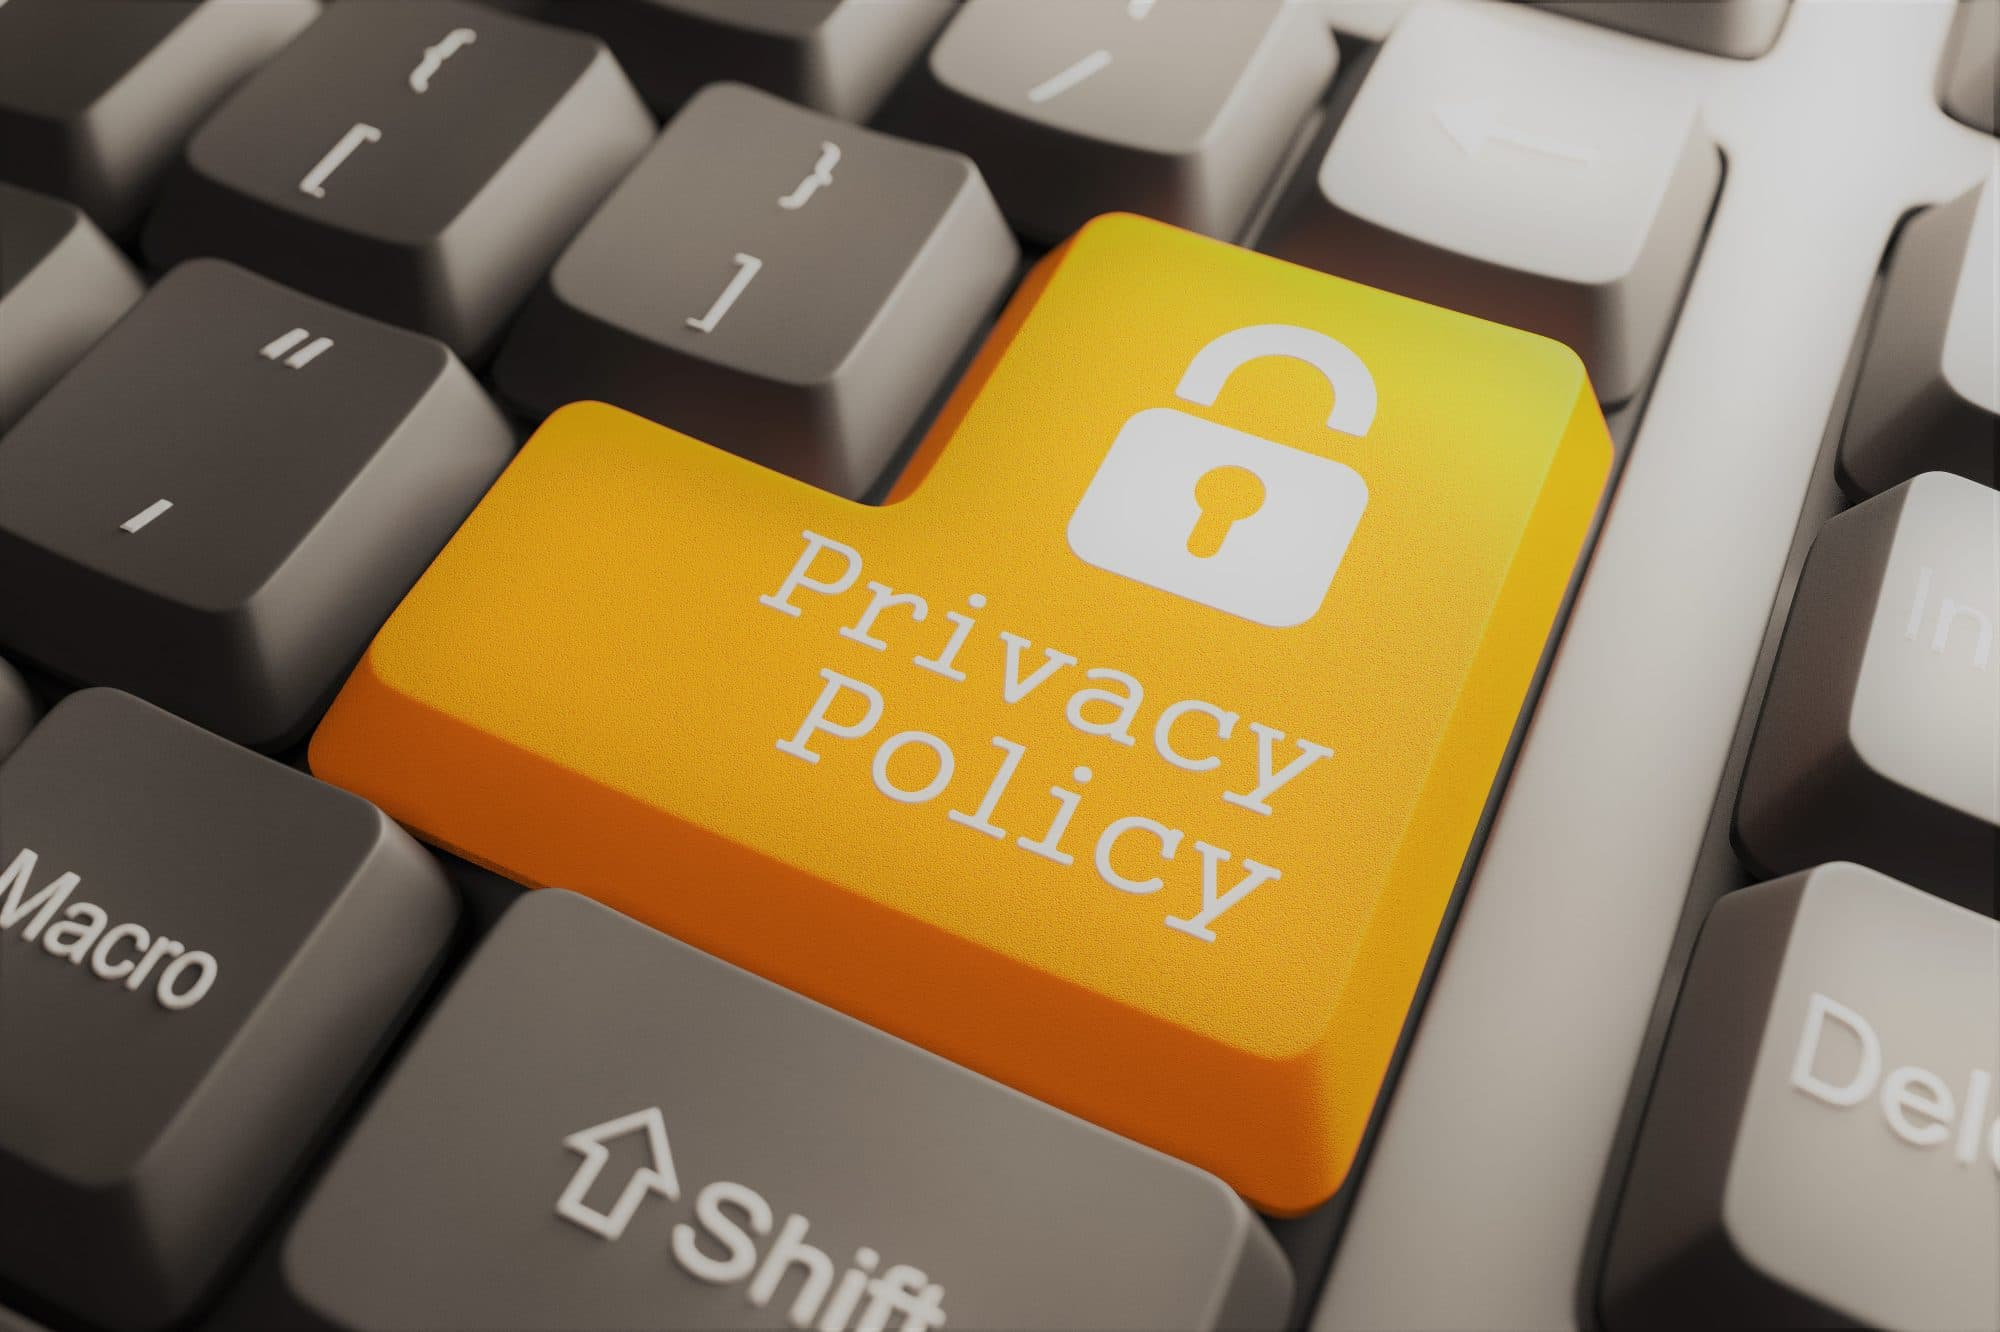 Privacy policy GDPR AVG keyboard knop